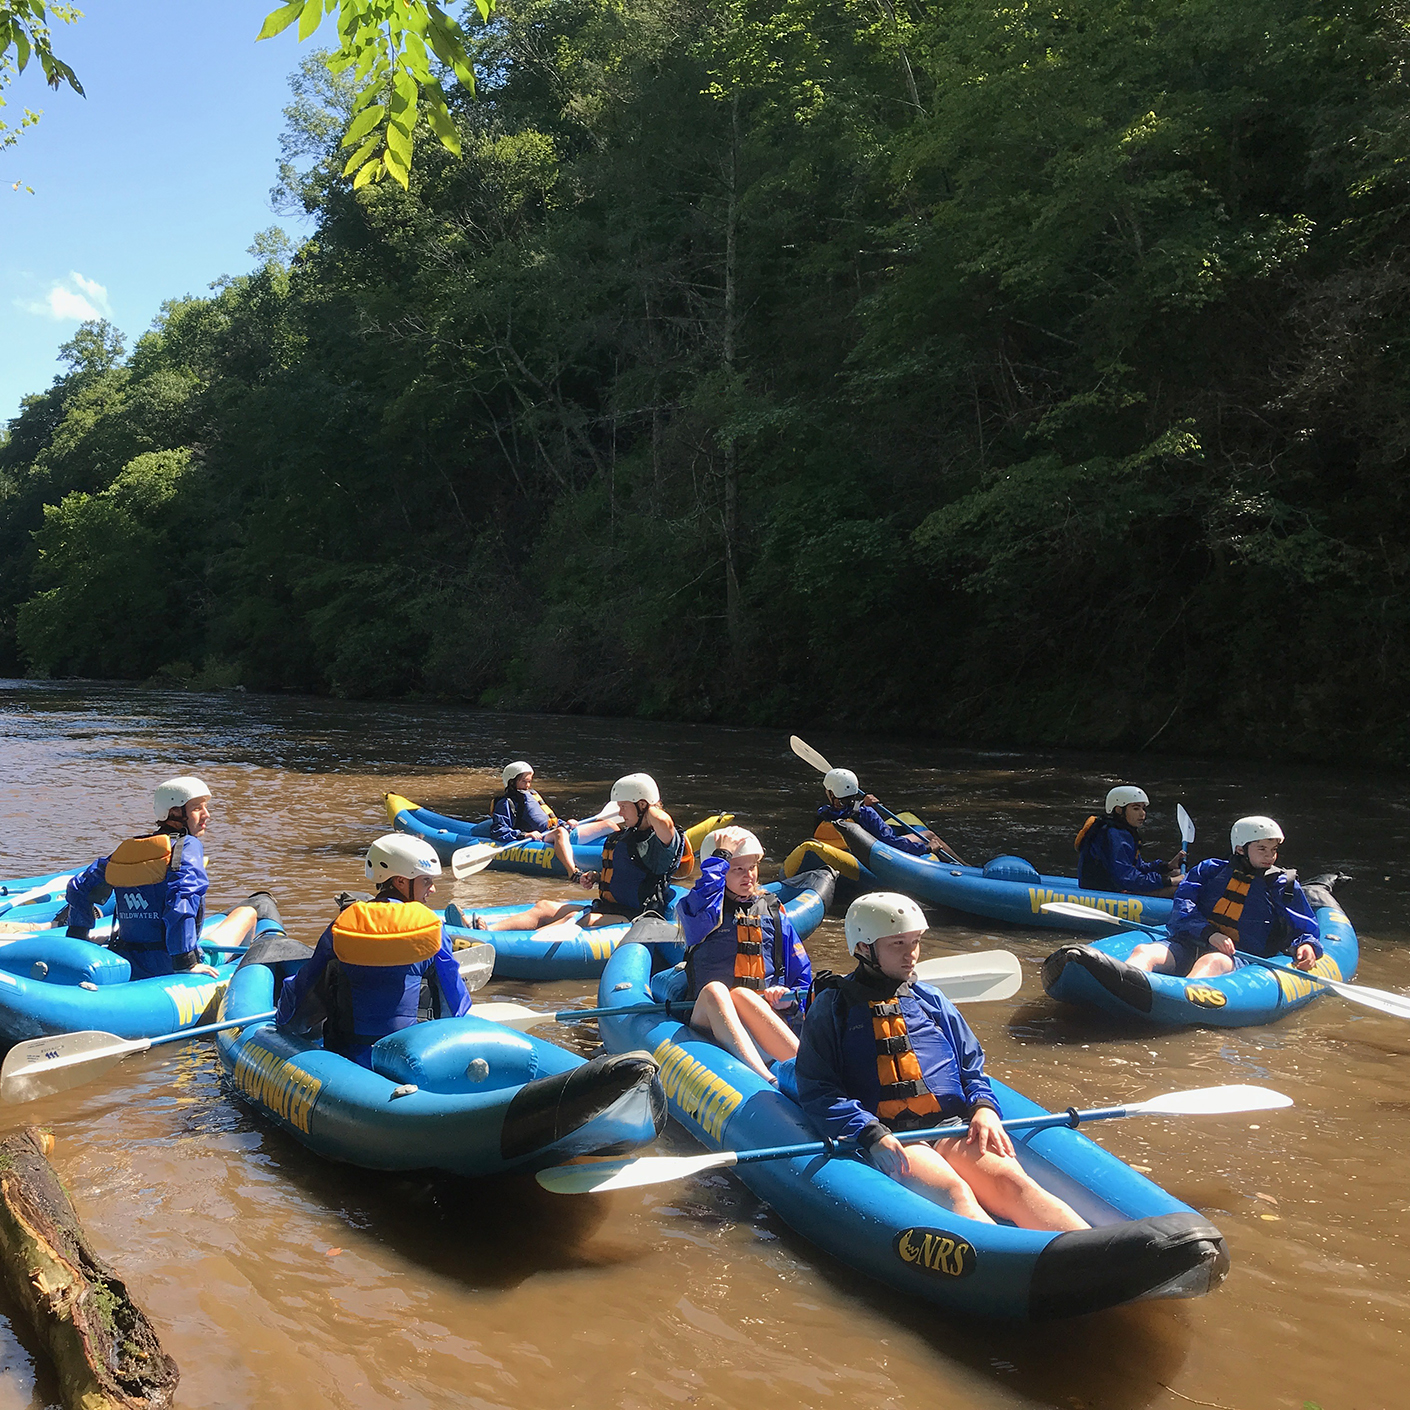 Inflatable whitewater kayaking on the Carolina Blue: Crags to Coast trip